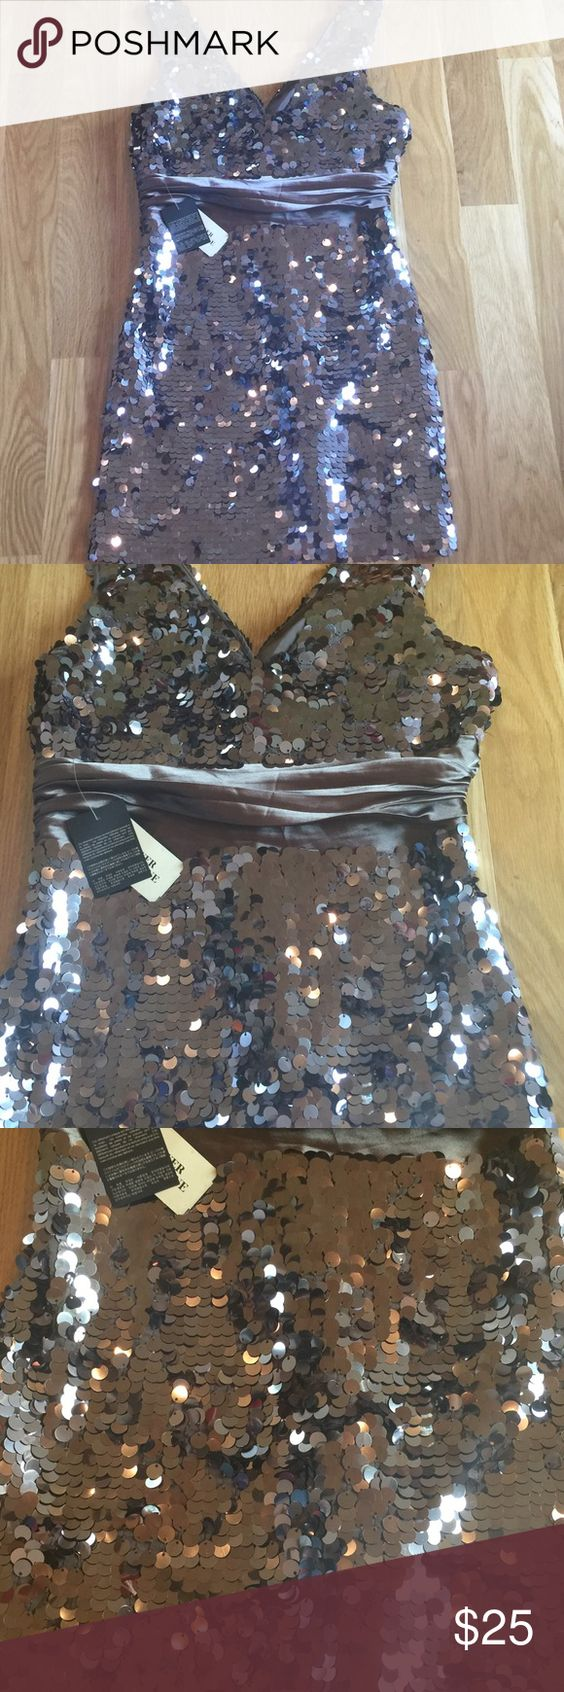 Brand New Forever 21 sparkle dress size M New with tags Forever 21 Dresses